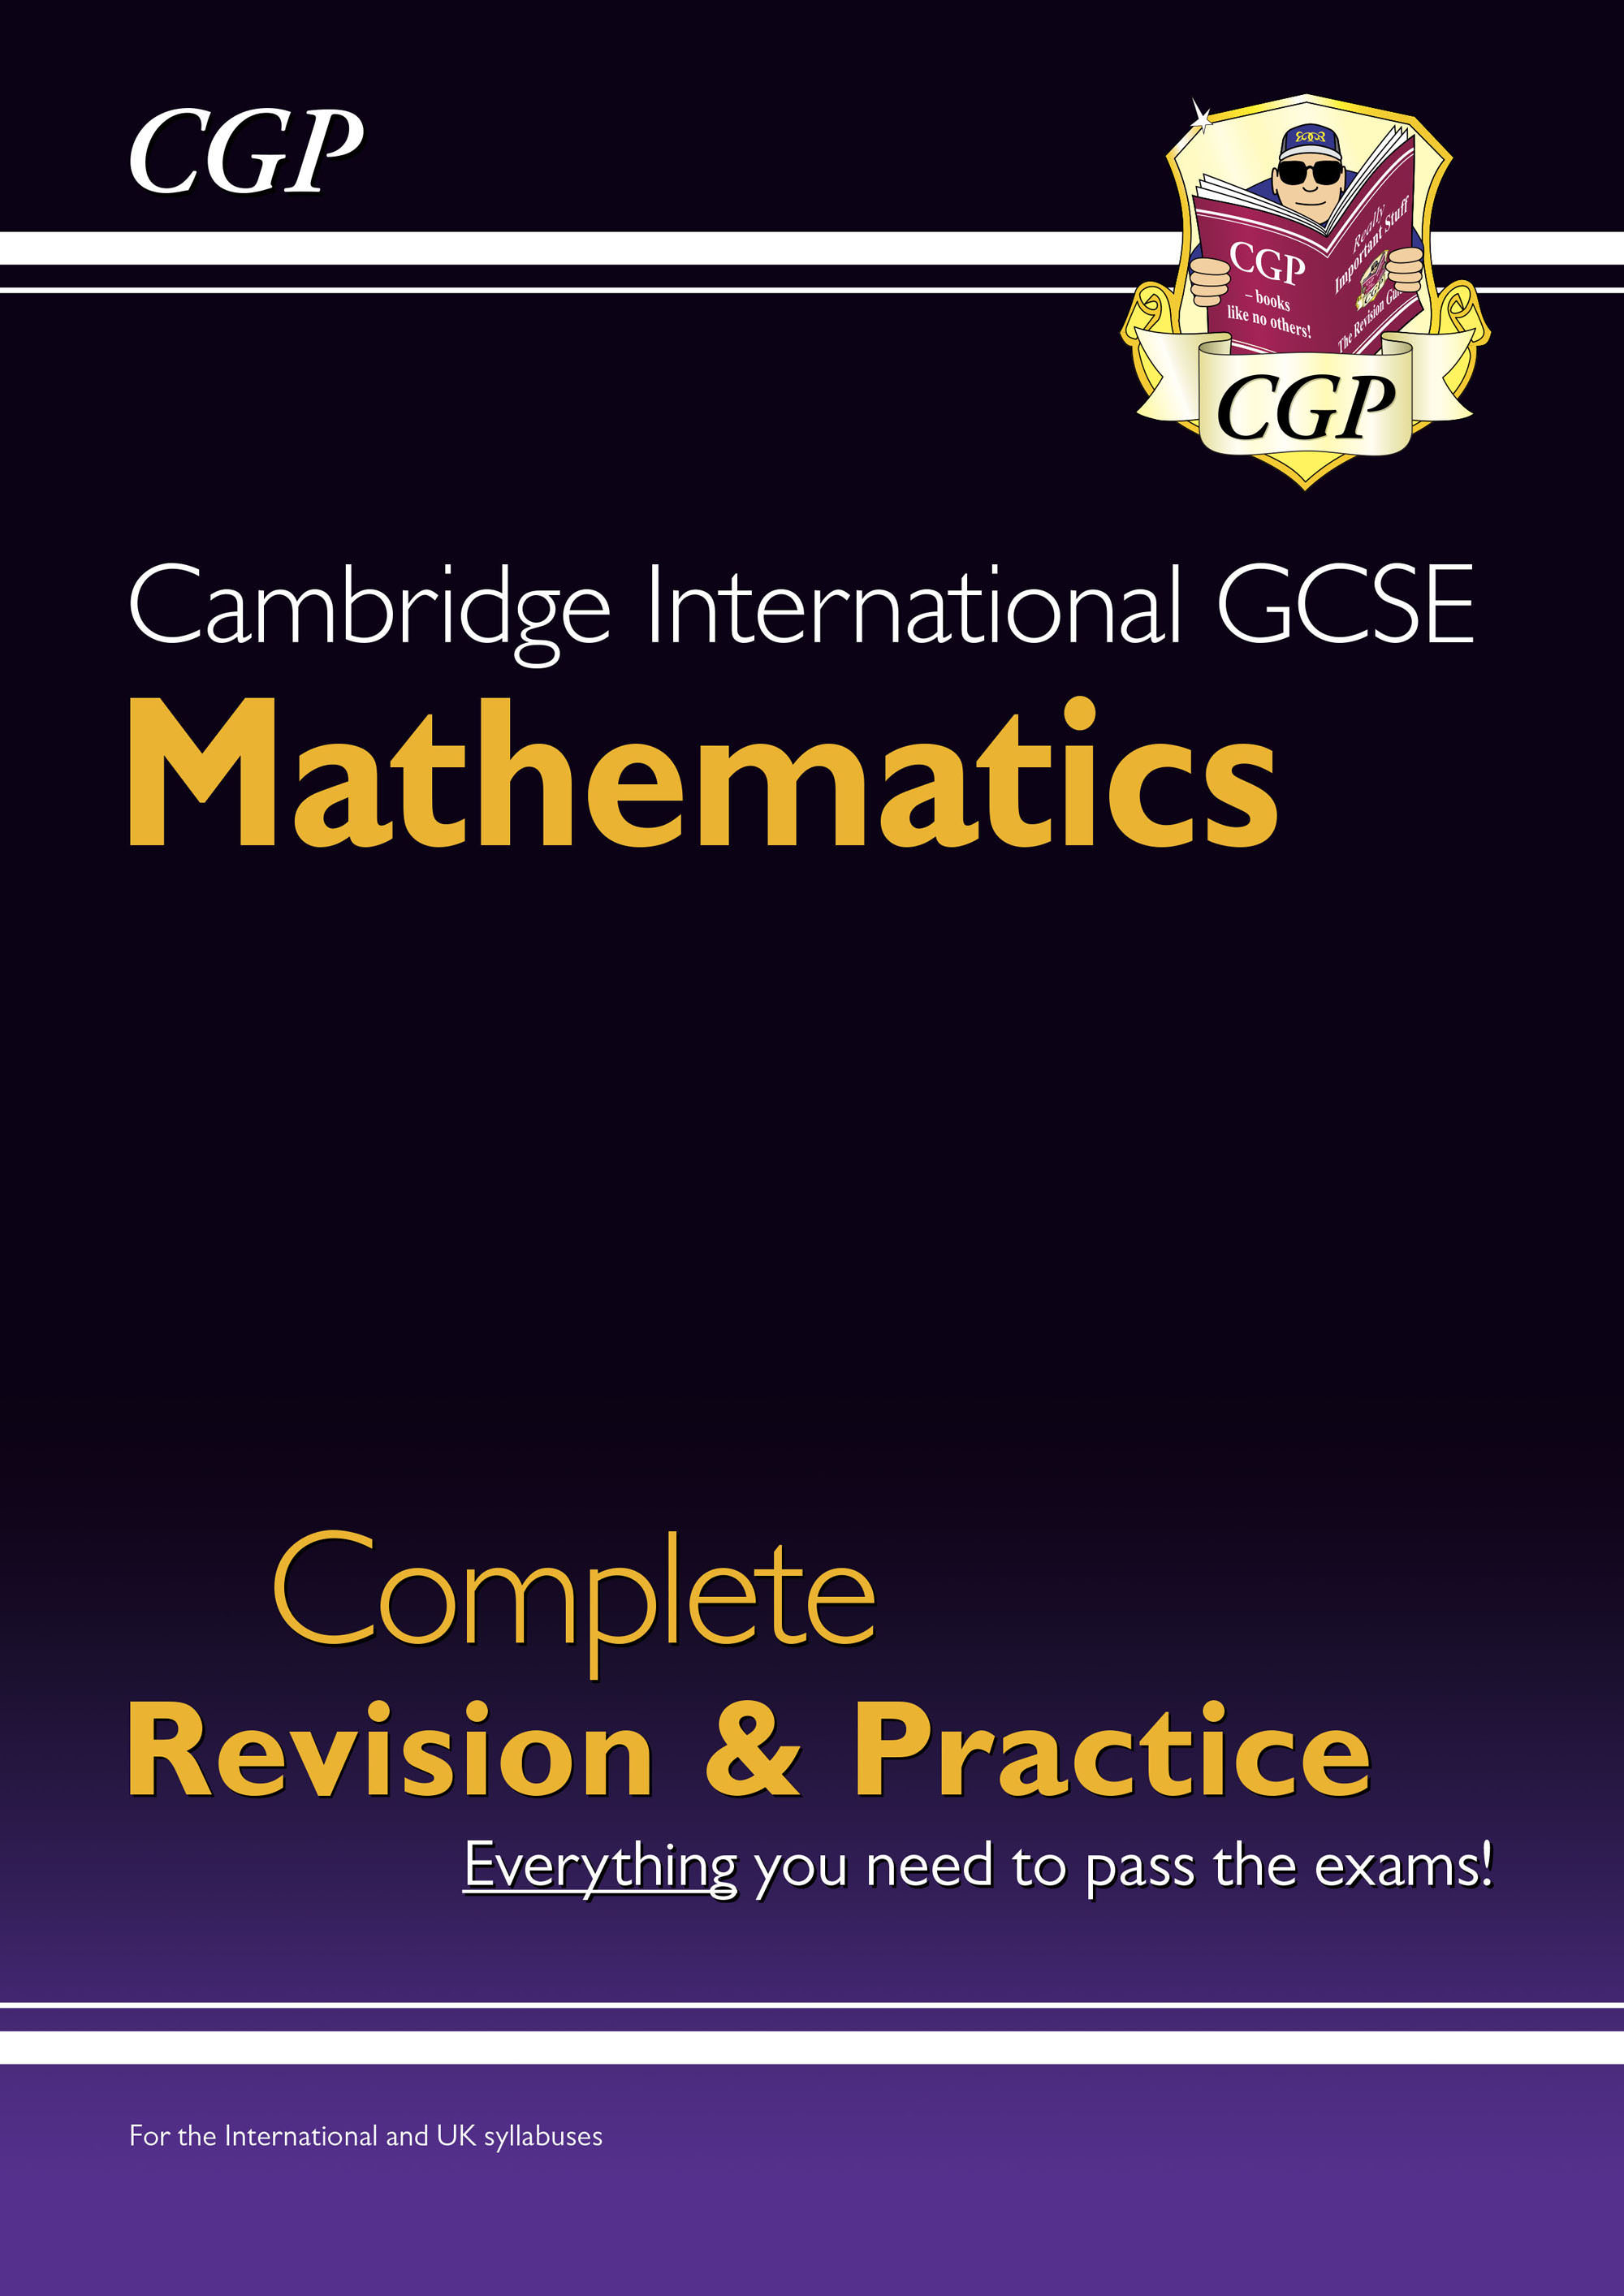 MISI41D - New Cambridge International GCSE Maths Complete Revision & Practice: Core & Extended (Onli